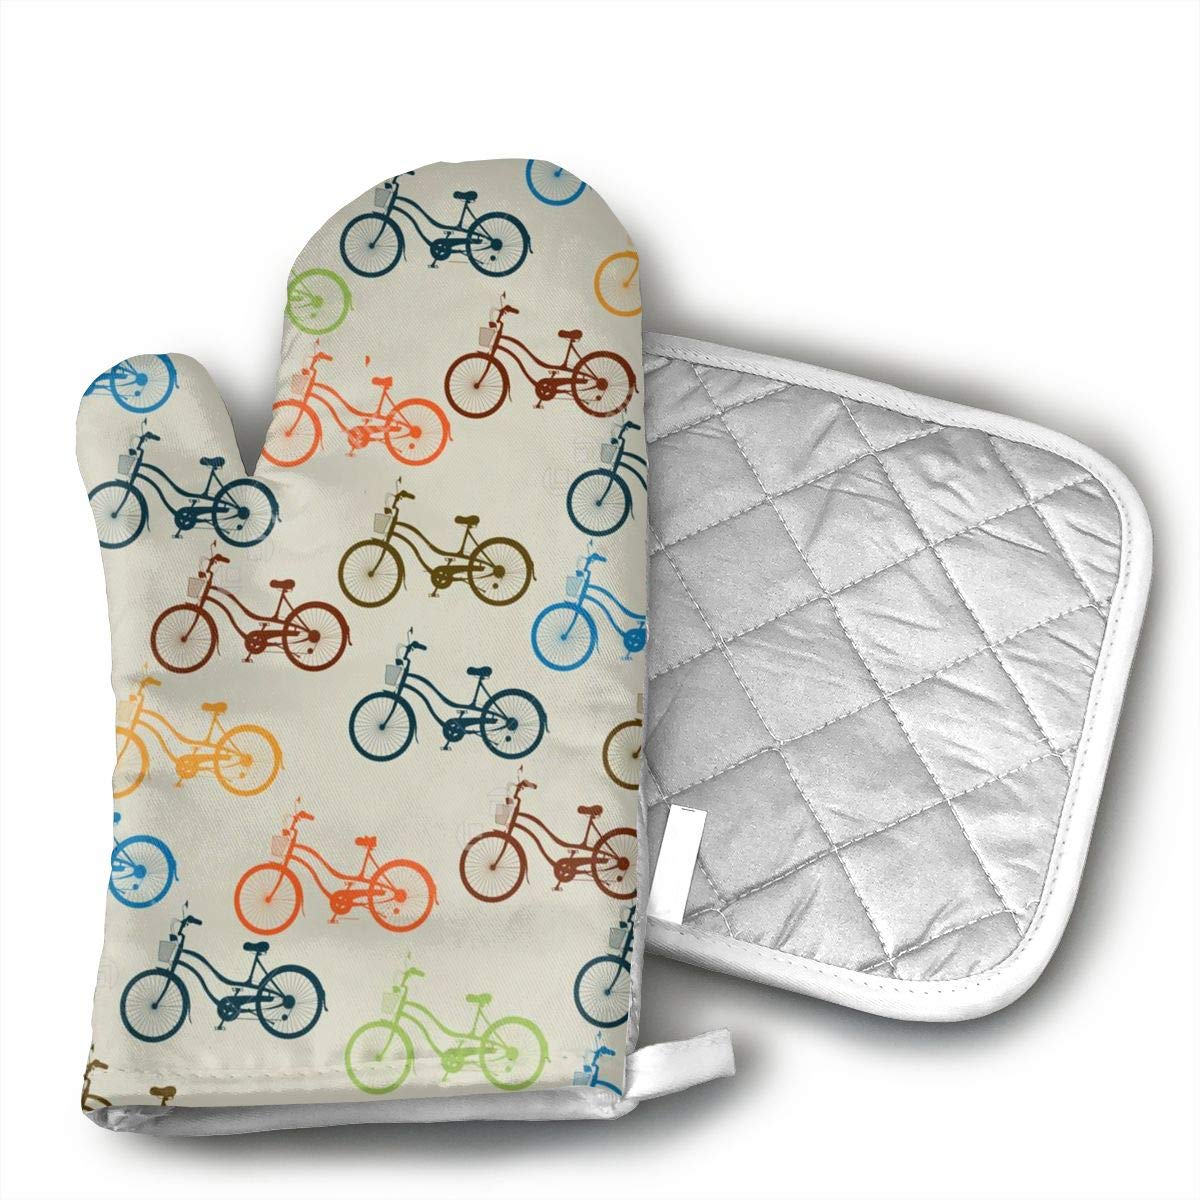 JFNNRUOP Color Bicycle Oven Mitts,with Potholders Oven Gloves,Insulated Quilted Cotton Potholders